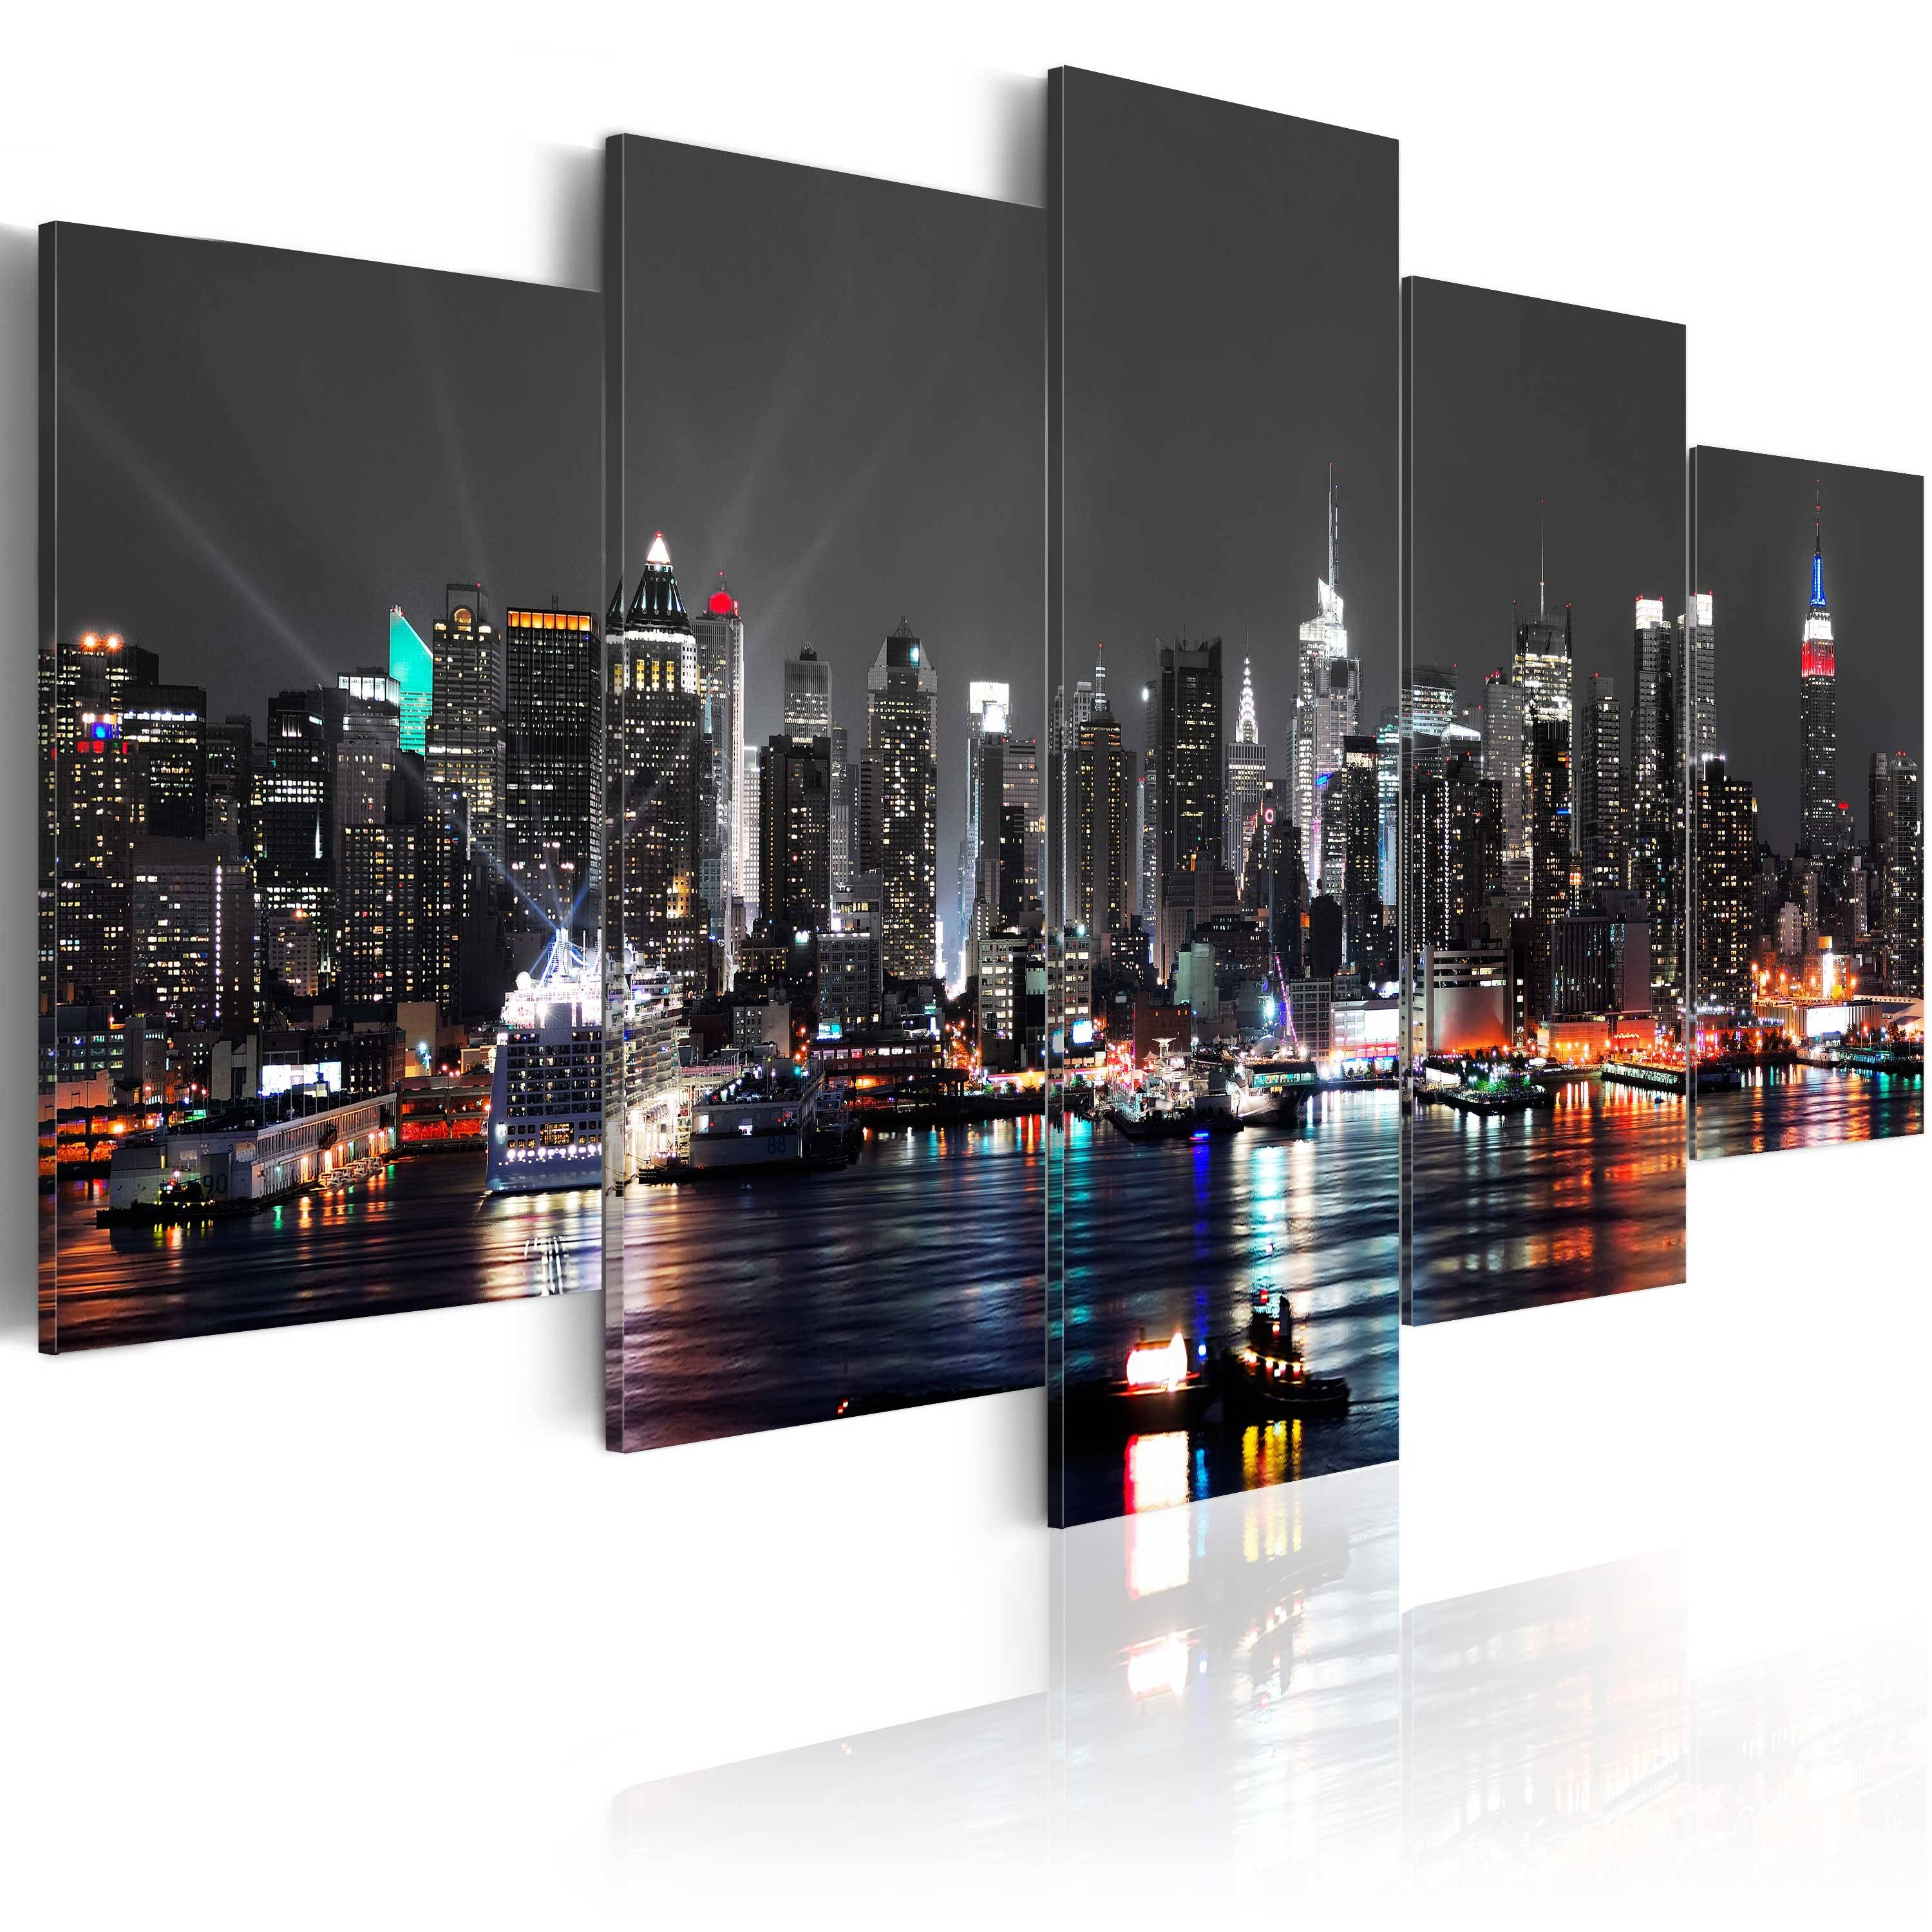 Stupendous New York City Wall Art Stickers Hd Canvas Print Home In Latest New York City Wall Art (View 12 of 20)